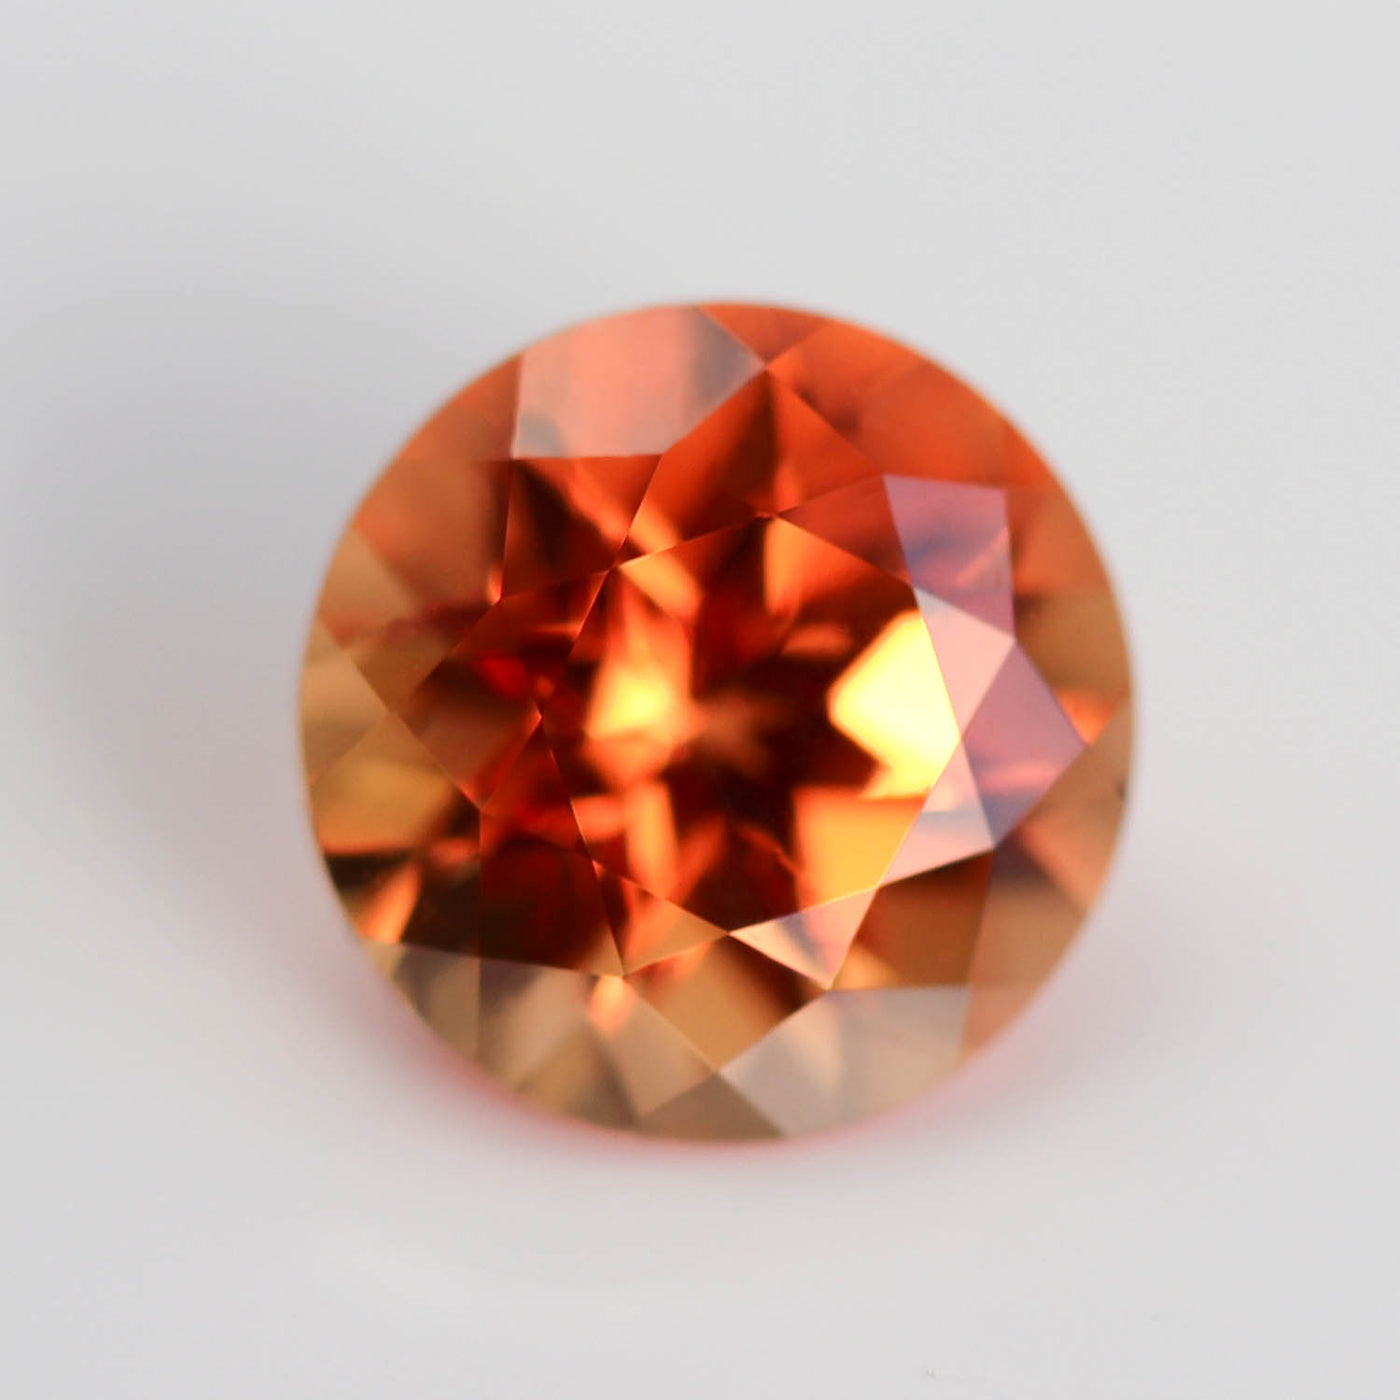 5mm Round Lab-grown Chatham Padparadscha Sapphire - 101950